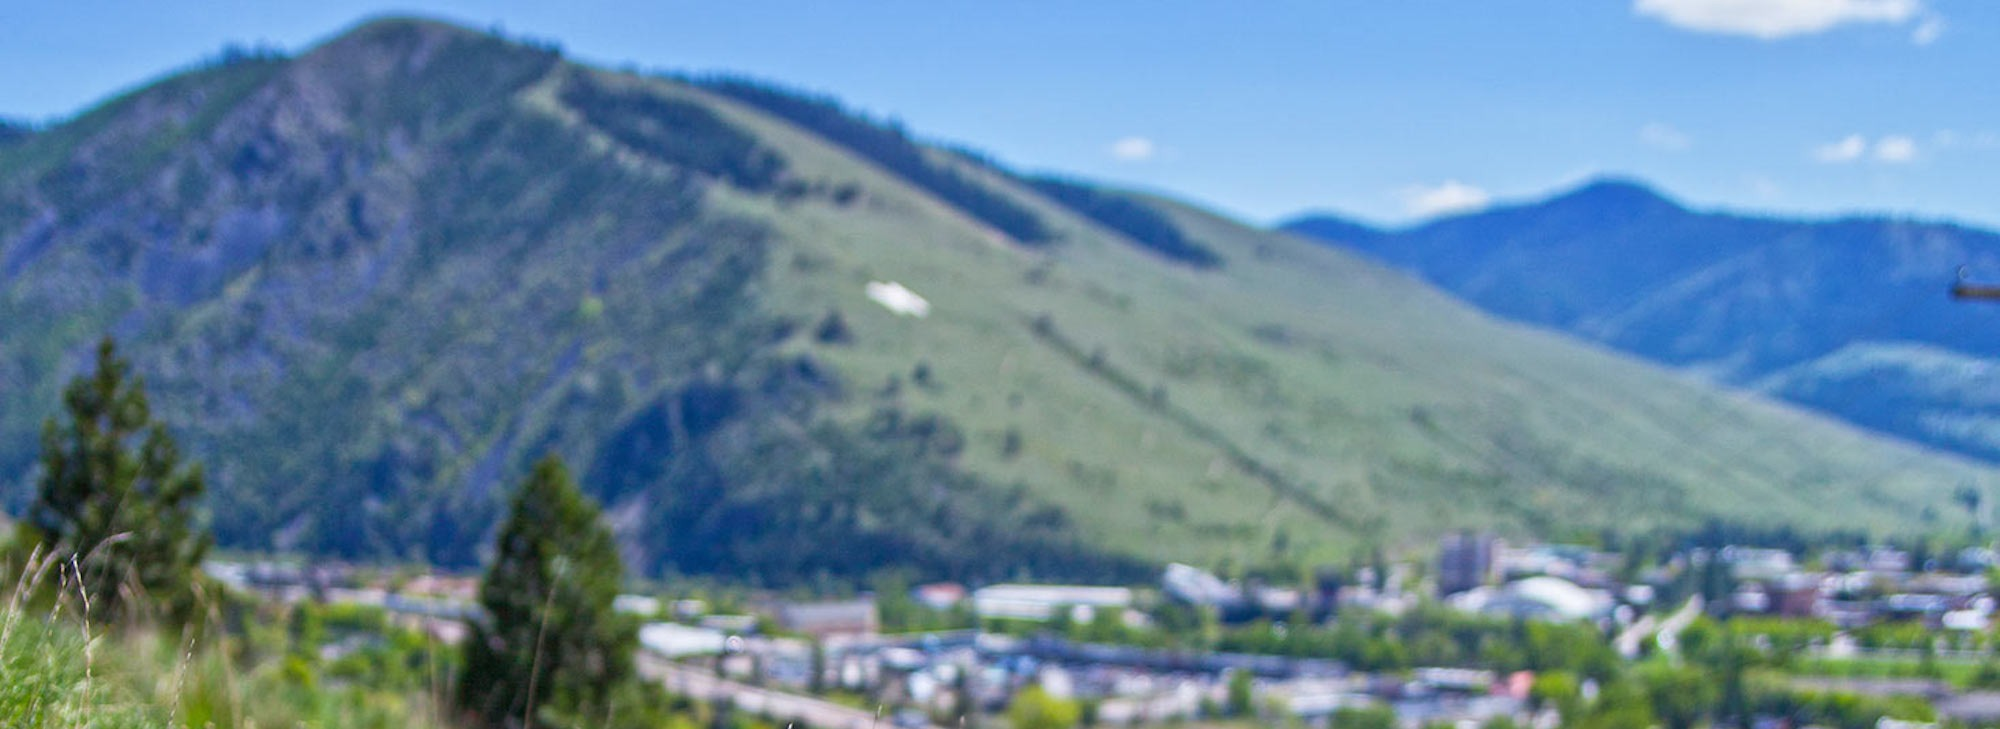 Fitness-Friendly Places for 2017:  #1 Missoula, MT